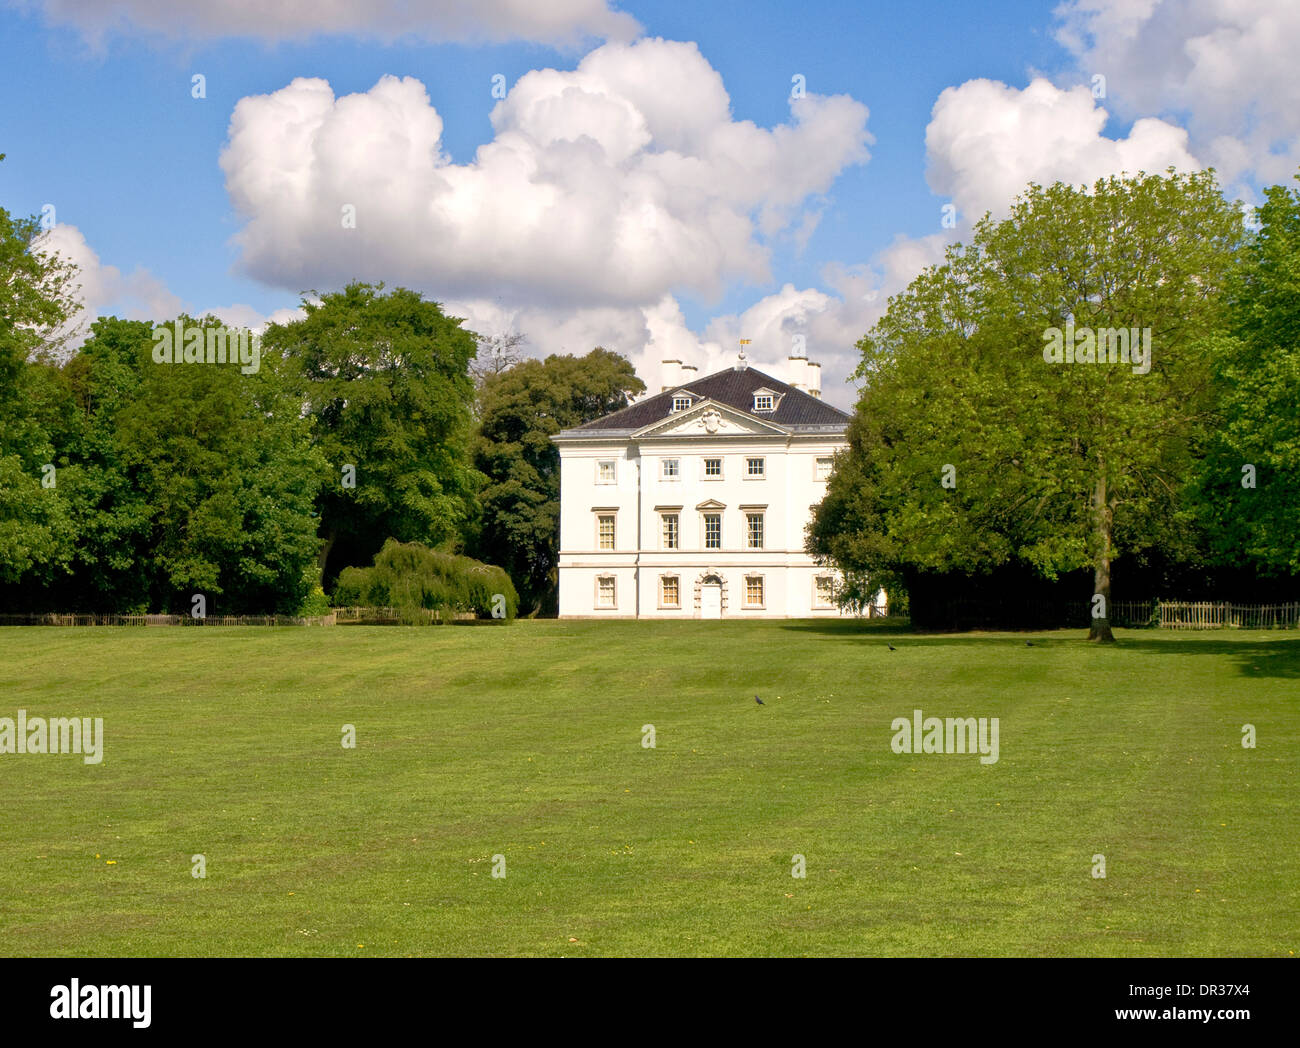 Marble Hill House Twickenham London England - Stock Image